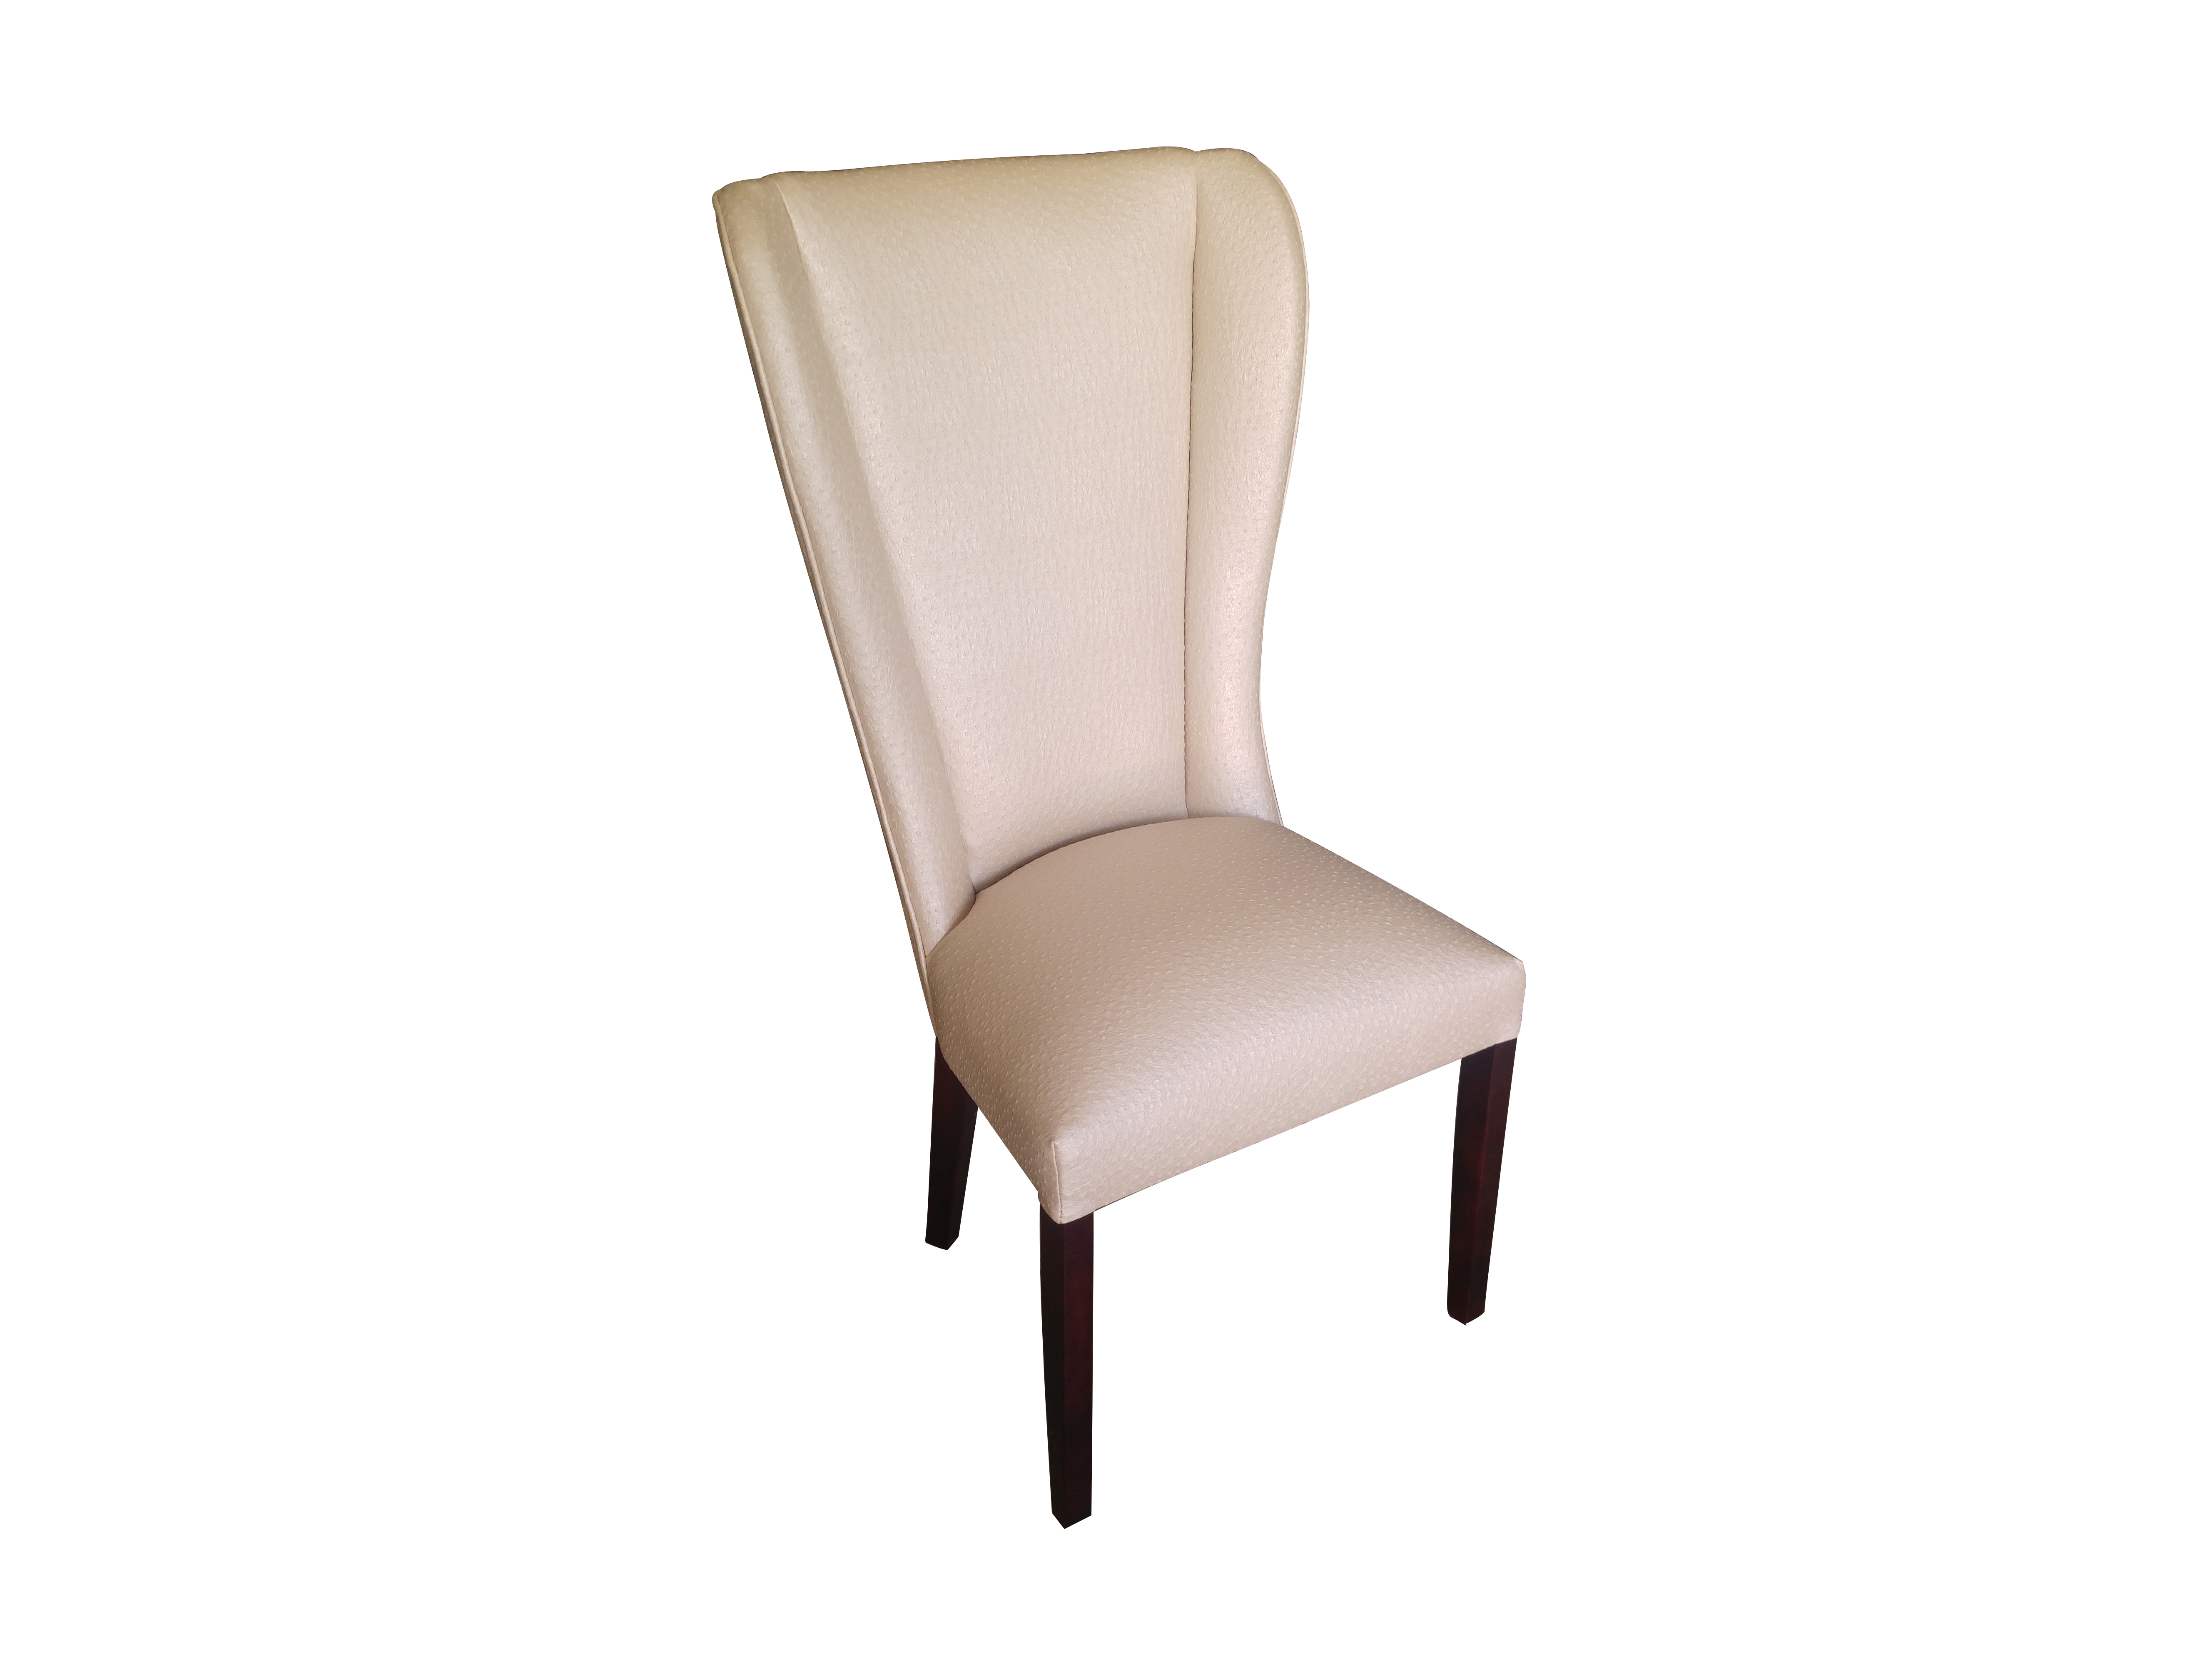 Winged Dining Chair Gallery